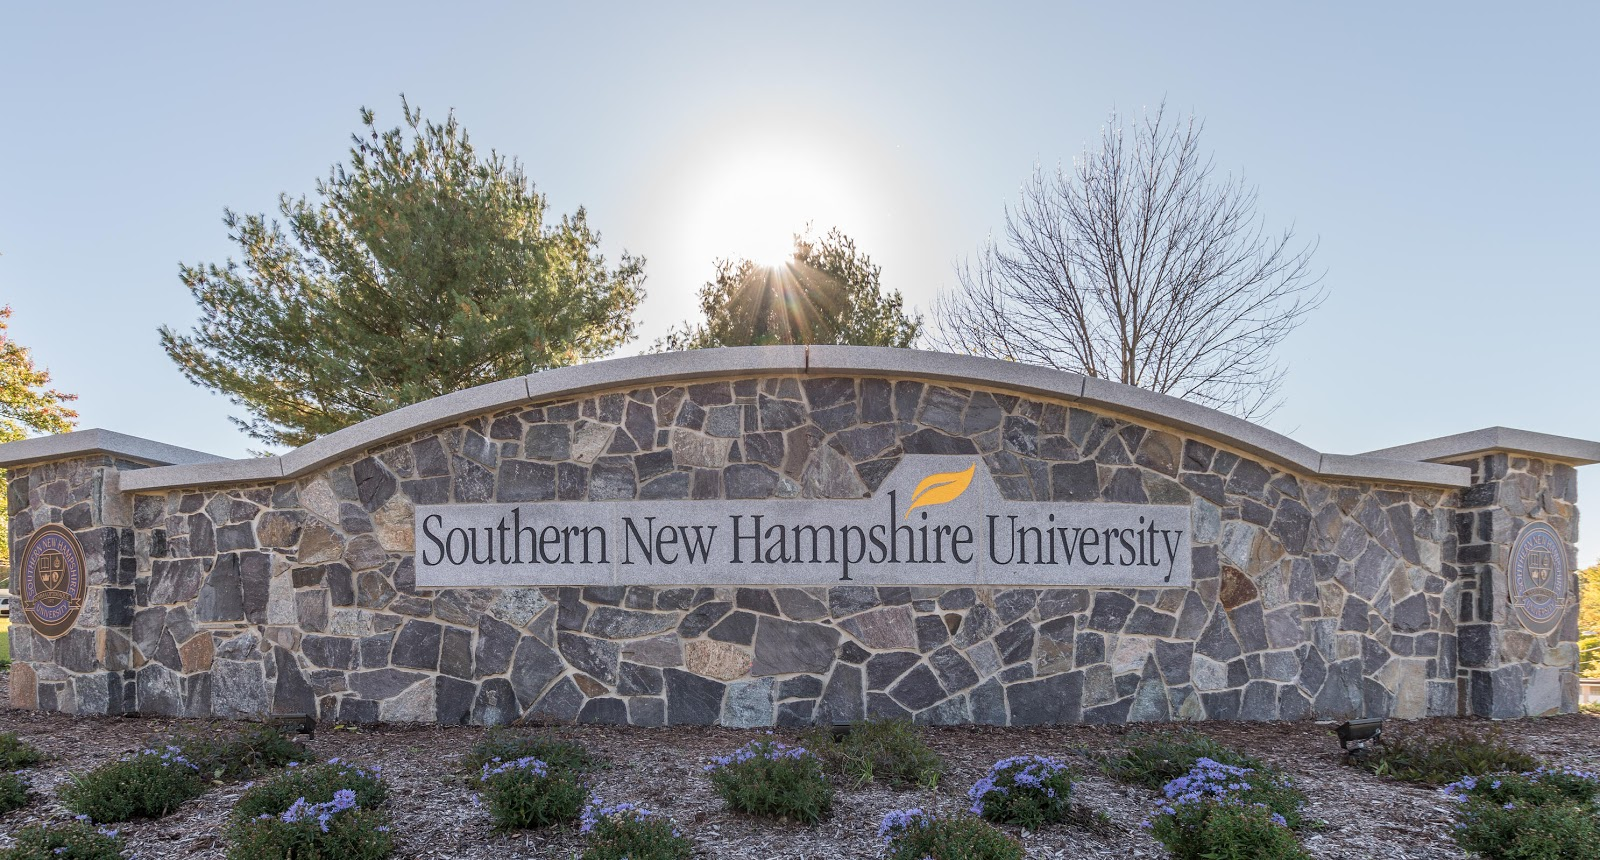 Swenson Granite Works provided WOODBURY GRAY™ granite for both the granite cap and the engraved panel of one of Southern New Hampshire University's first entry signs